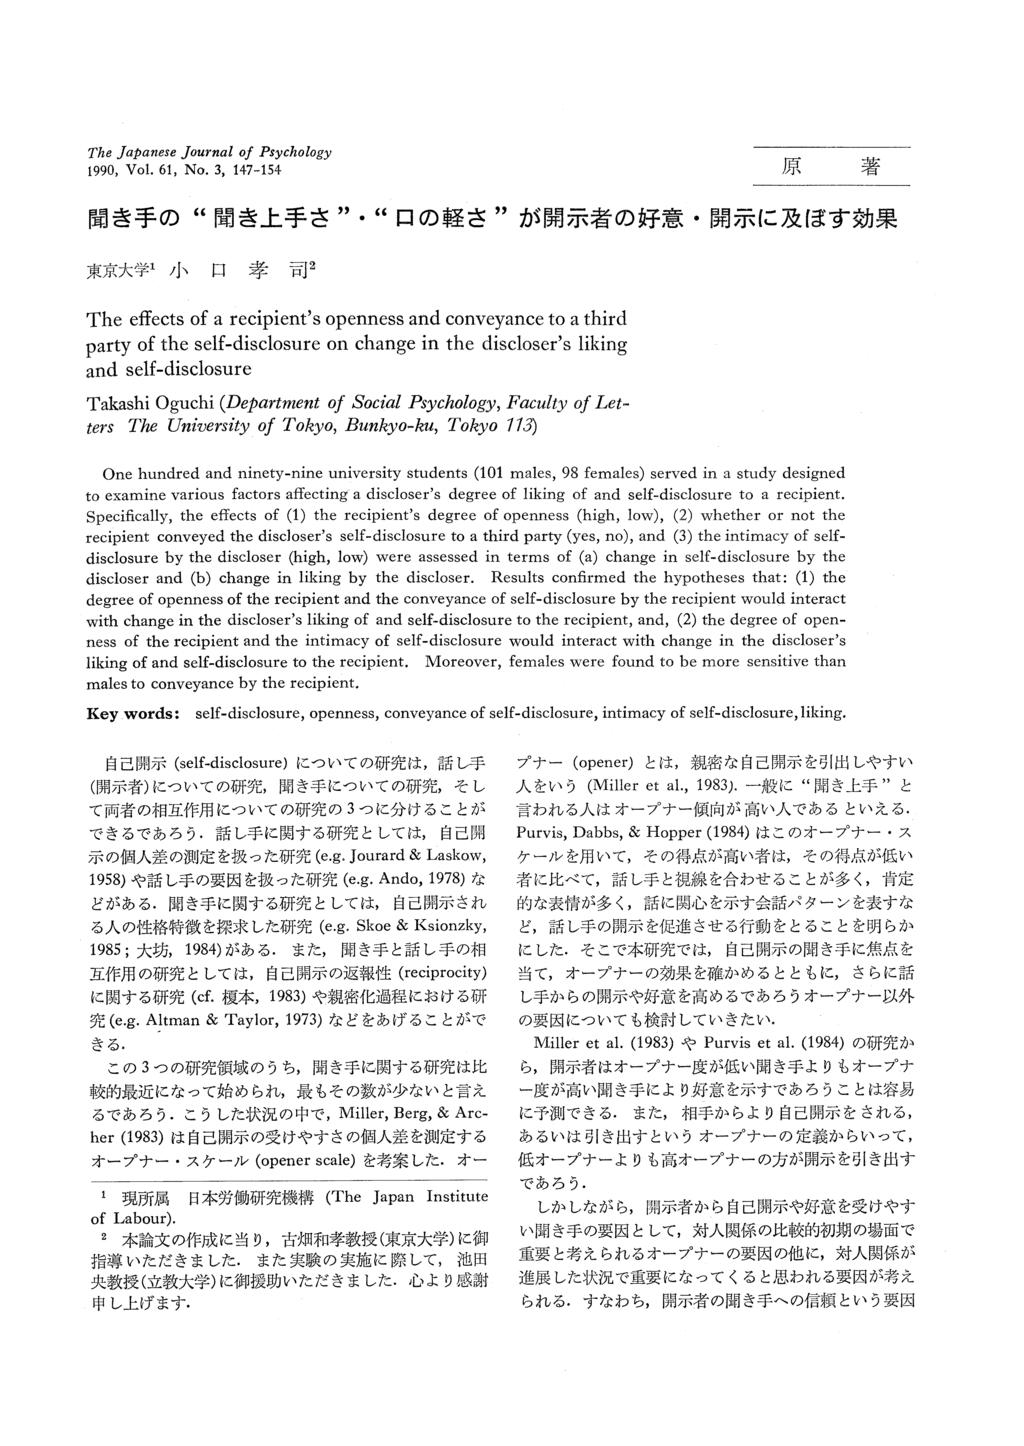 The Japanese Journal of Psychology 1990, Vol. 61, No.